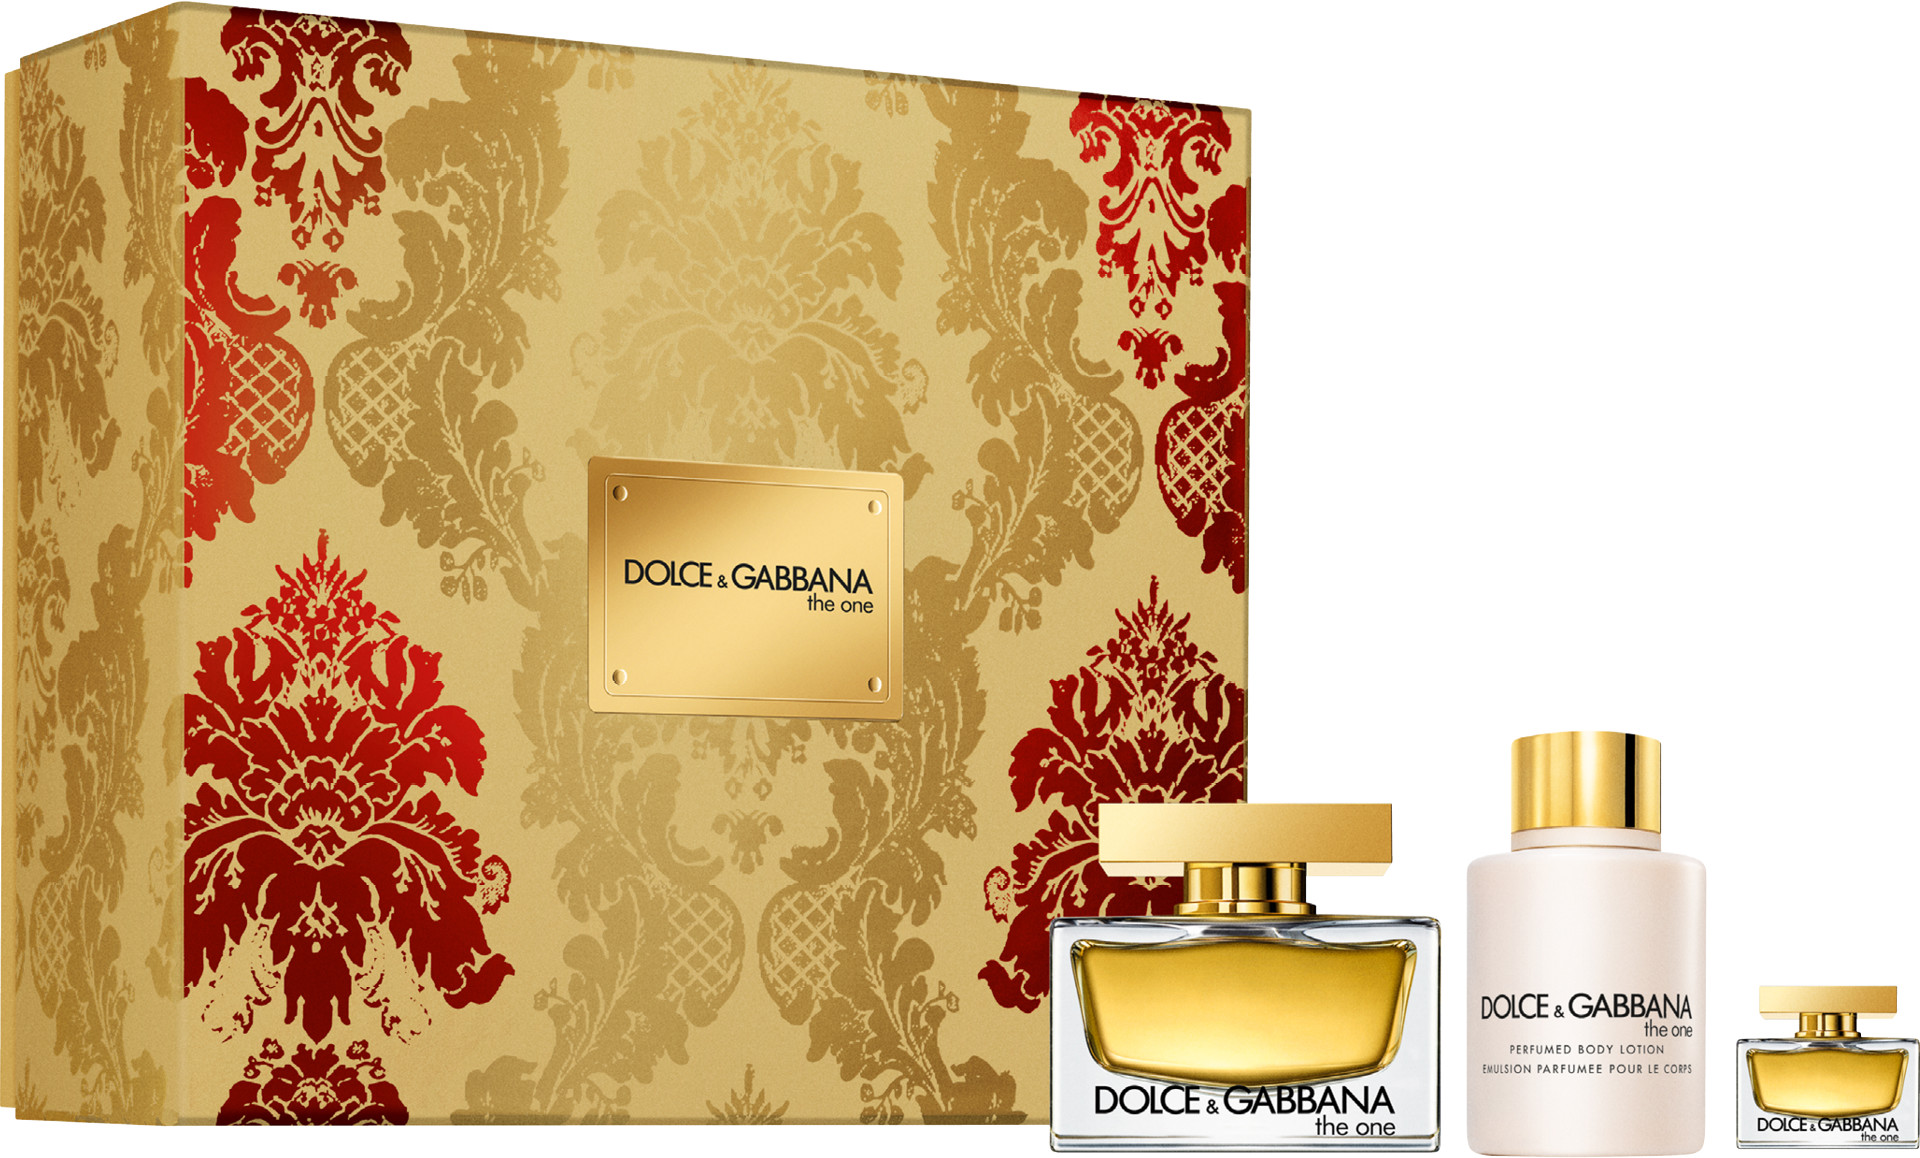 Dolce and Gabbana Dolce & Gabbana The One Eau De Parfum Gift Set